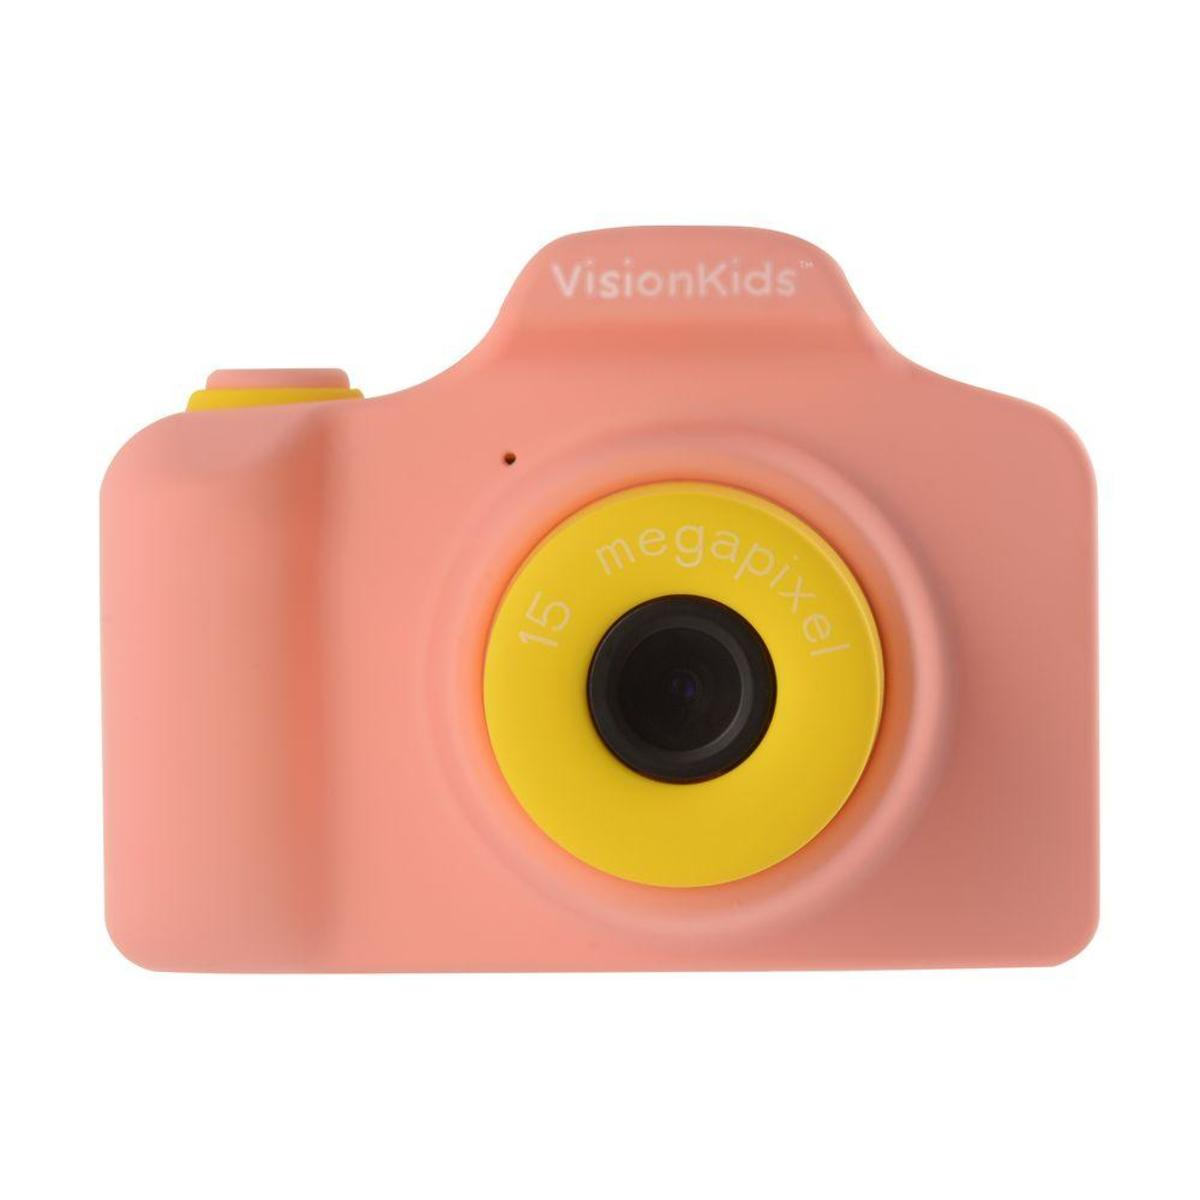 HappiCAMU Kids Camera   PINK   Original & Authorised Product with 1 Yr Warranty